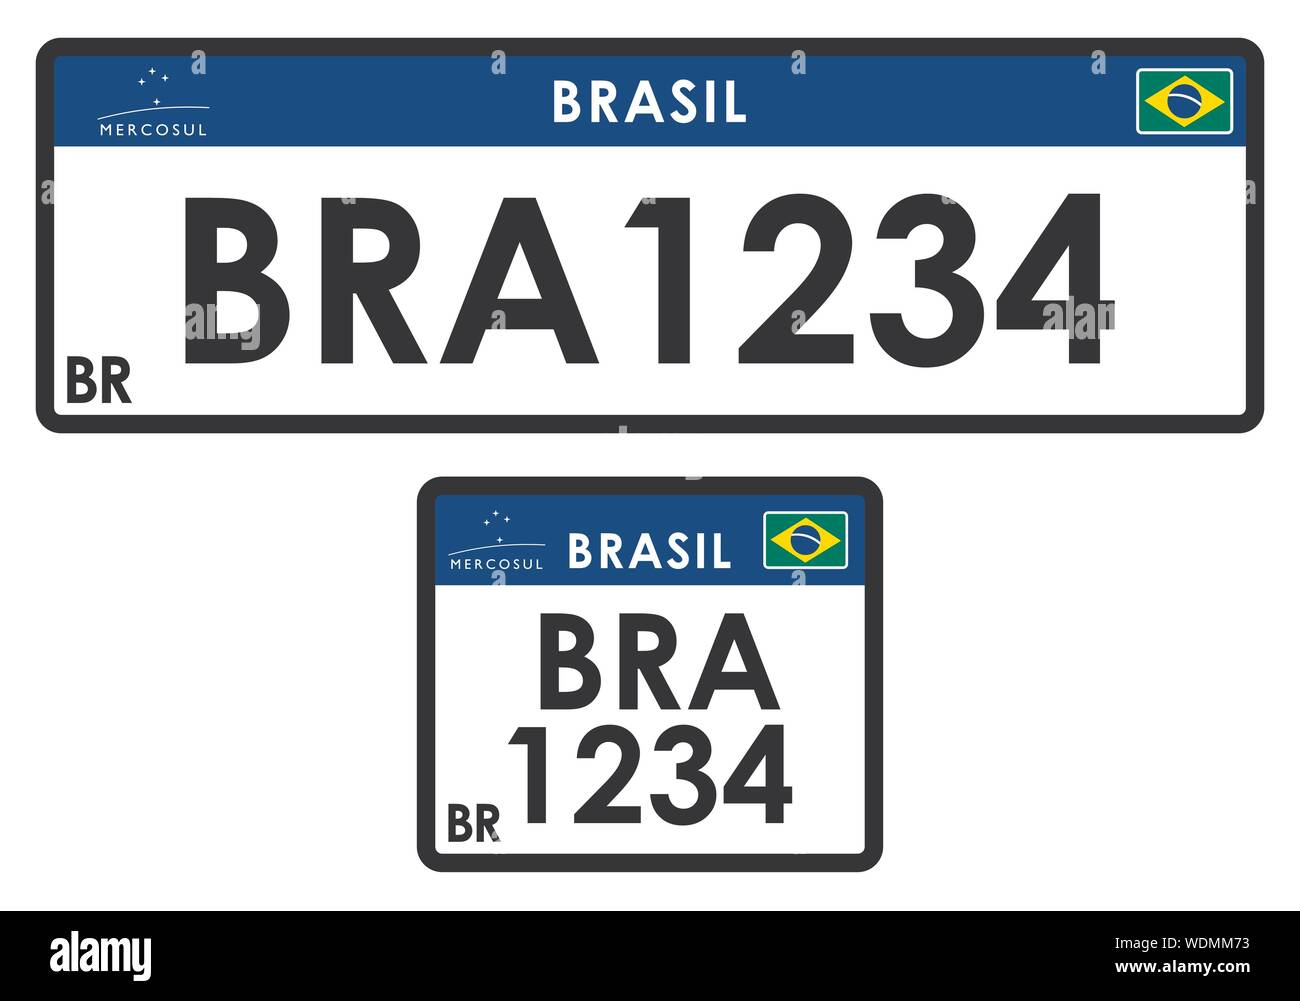 Bra Sticker Car Vehicle Number Plate Country Codes Brazil Sign